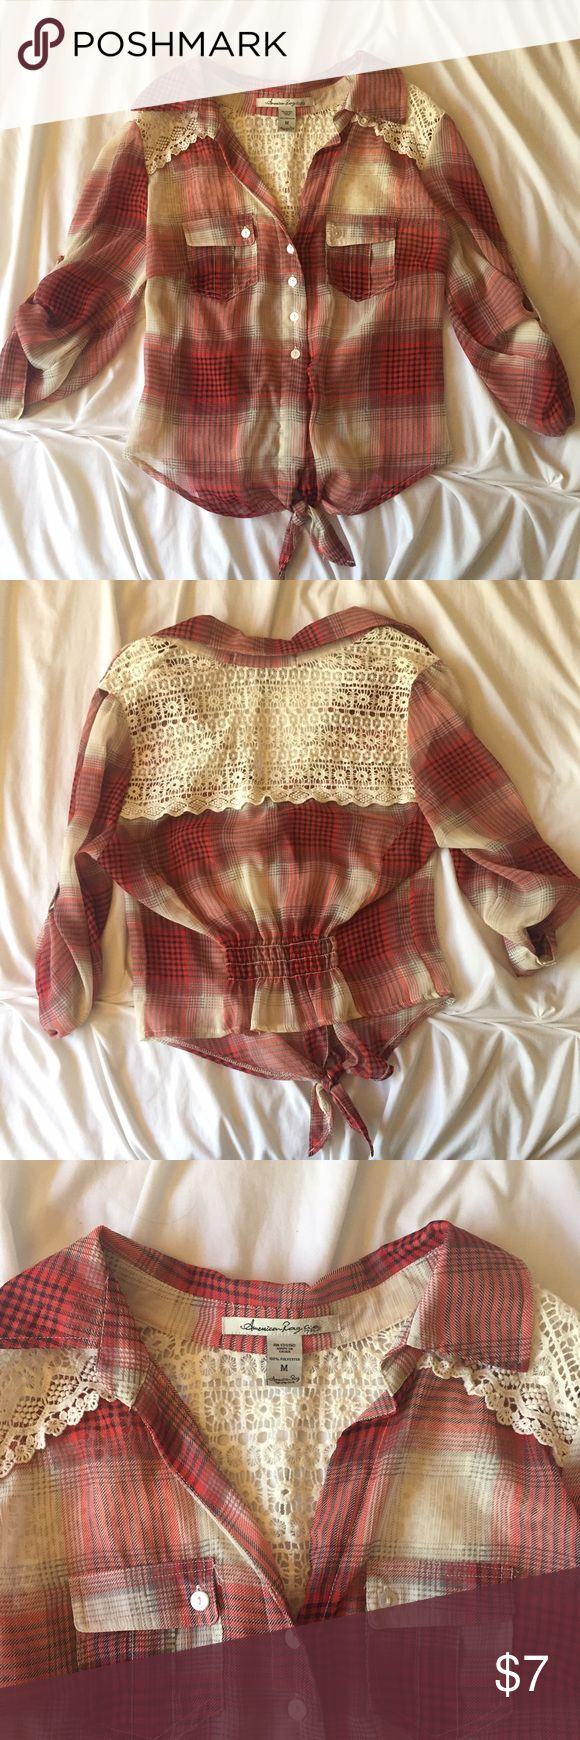 American Rag Cowgirl Shirt Red and of white pattern. Lace detail on the back. Great condition never worn. American Rag Tops